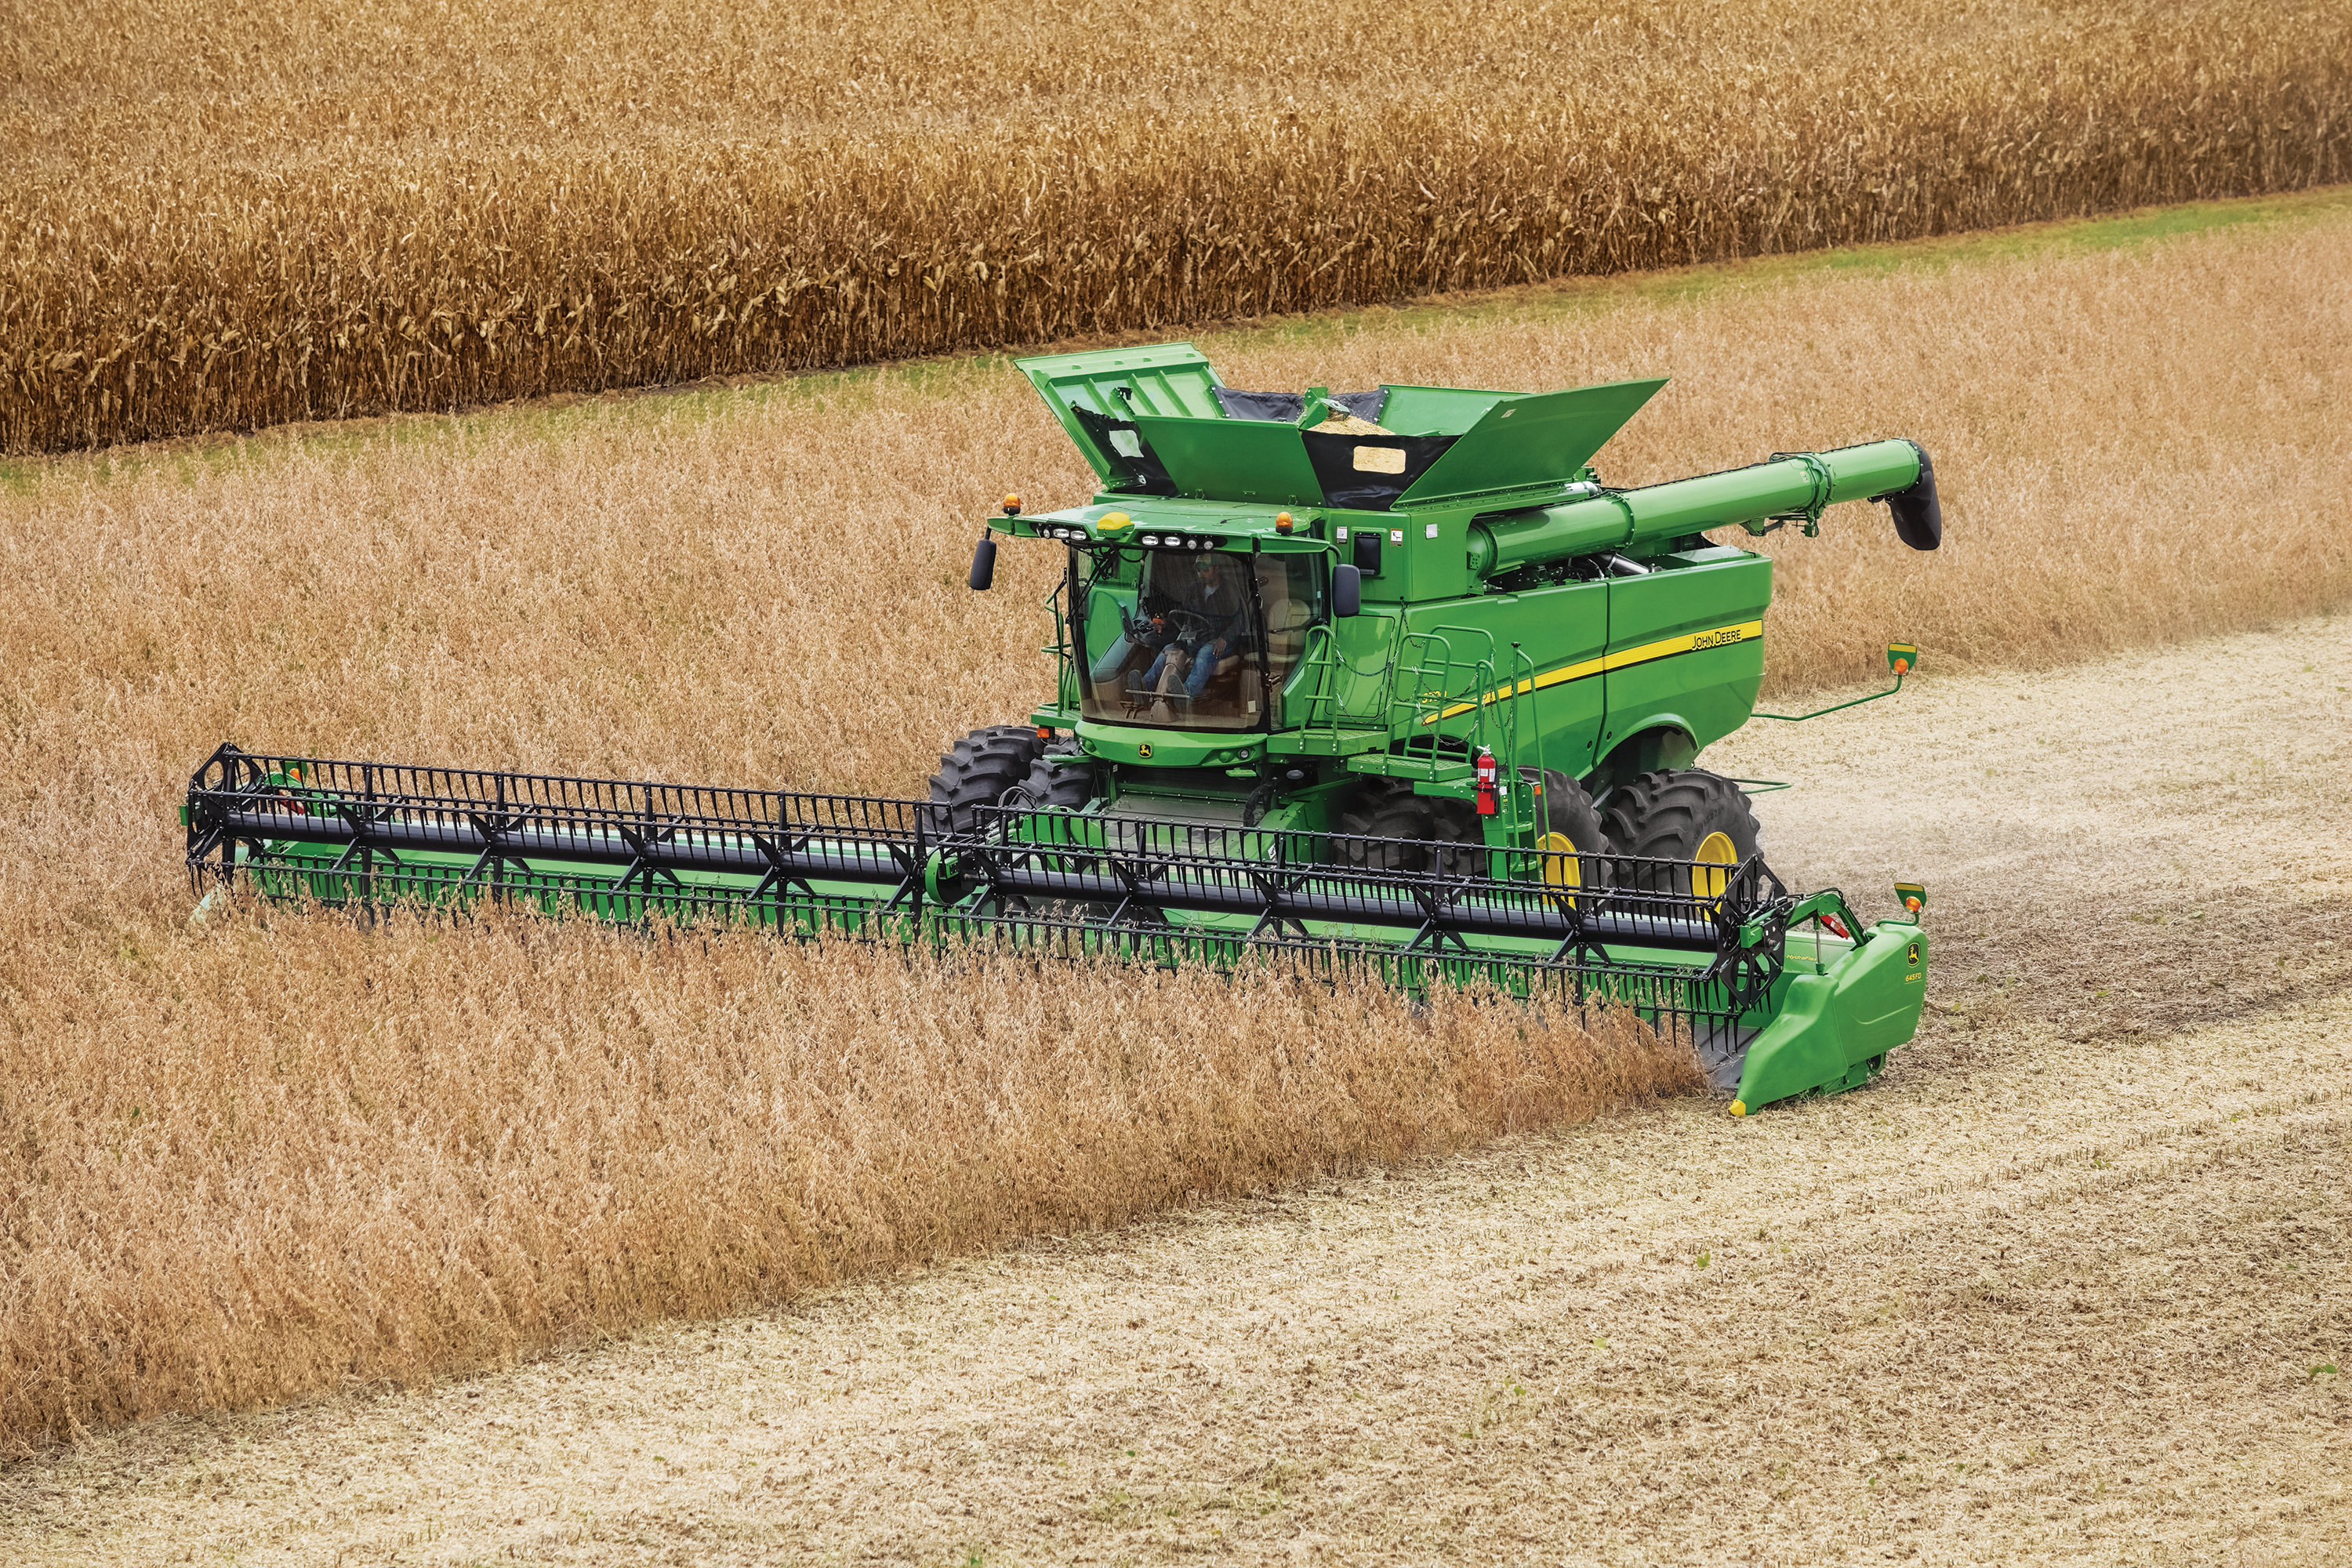 the john deere s700 series combine was recognized by the american society of agricultural and biological engineers and association of equipment